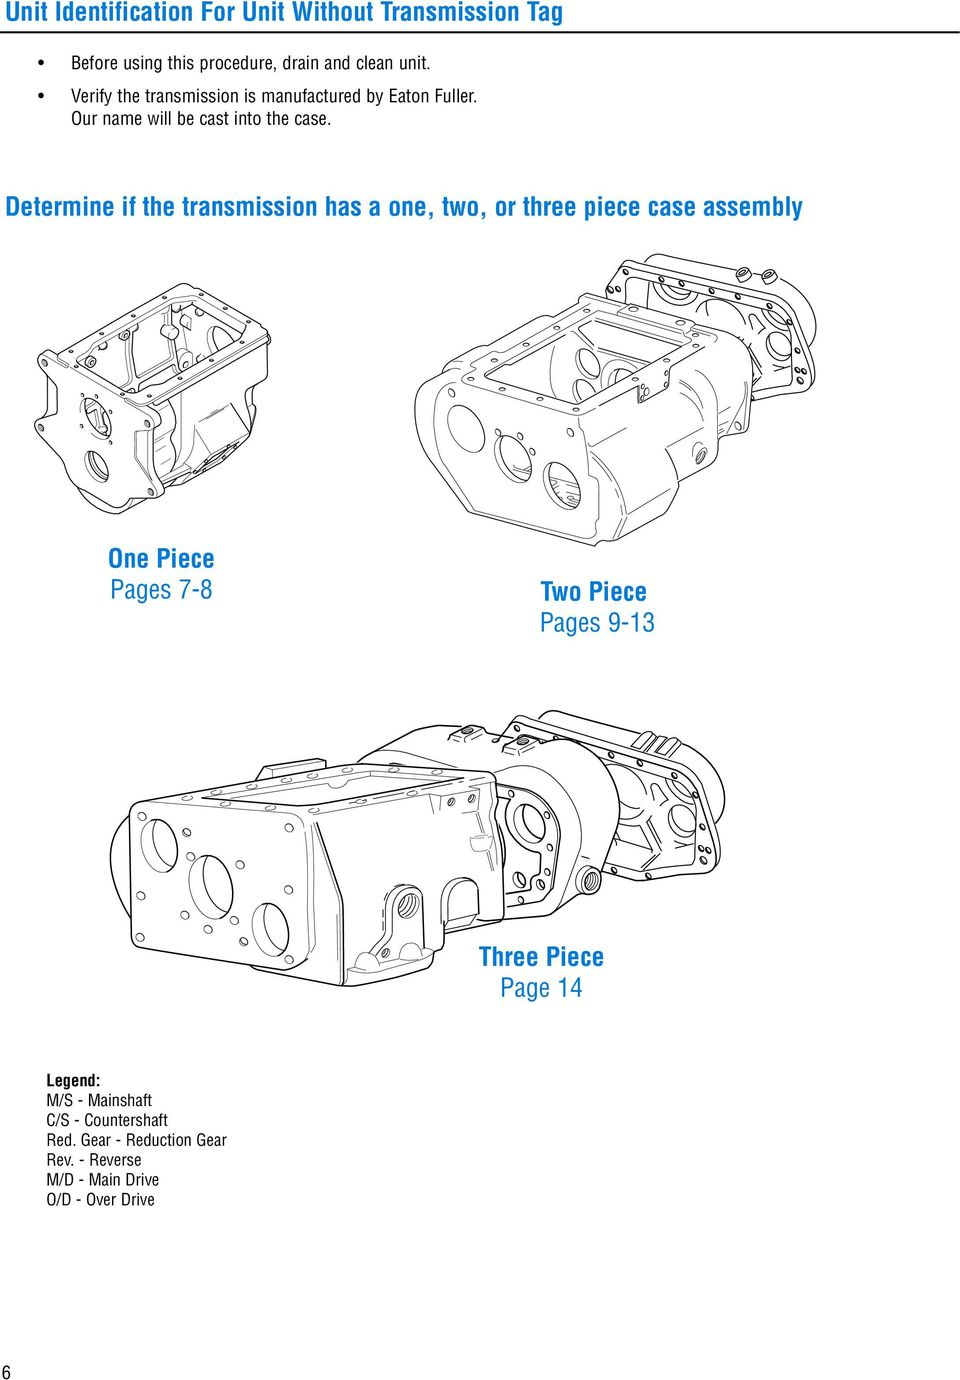 Eaton Fuller Heavy Duty Transmissions Pdf Ford 289 Engine And Transmission Assembly Diagram Determine If The Has A One Two Or Three Piece Case